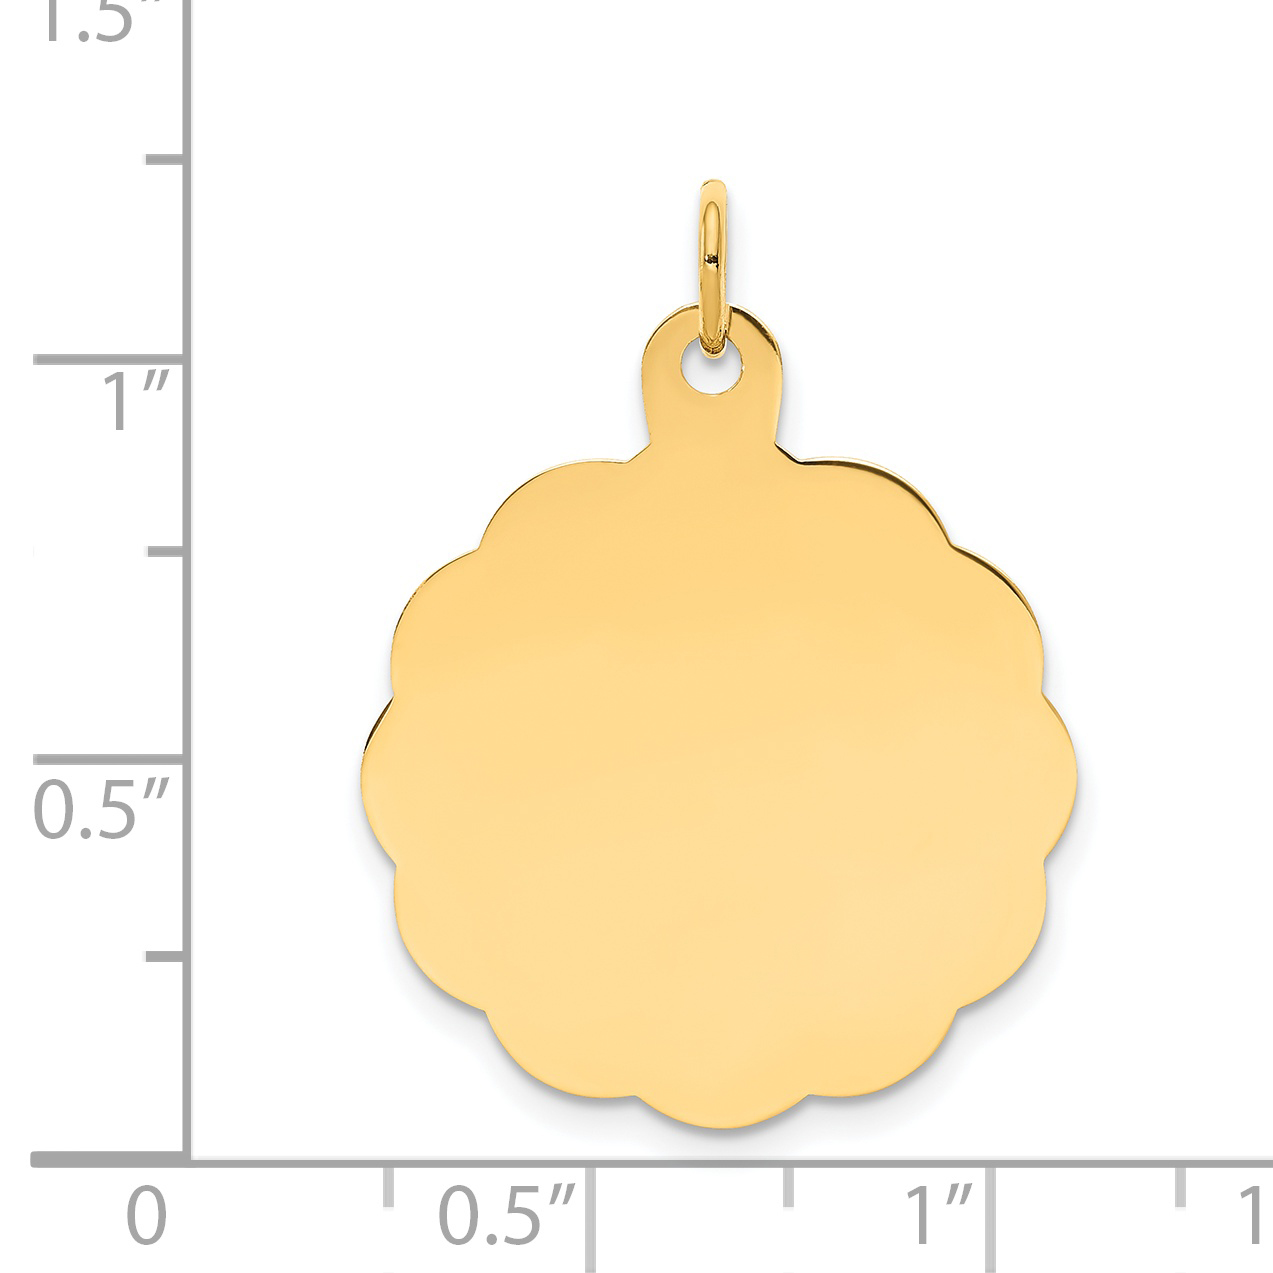 14K Yellow Gold .027 Gauge Engravable Scalloped Disc Charm - image 1 of 2